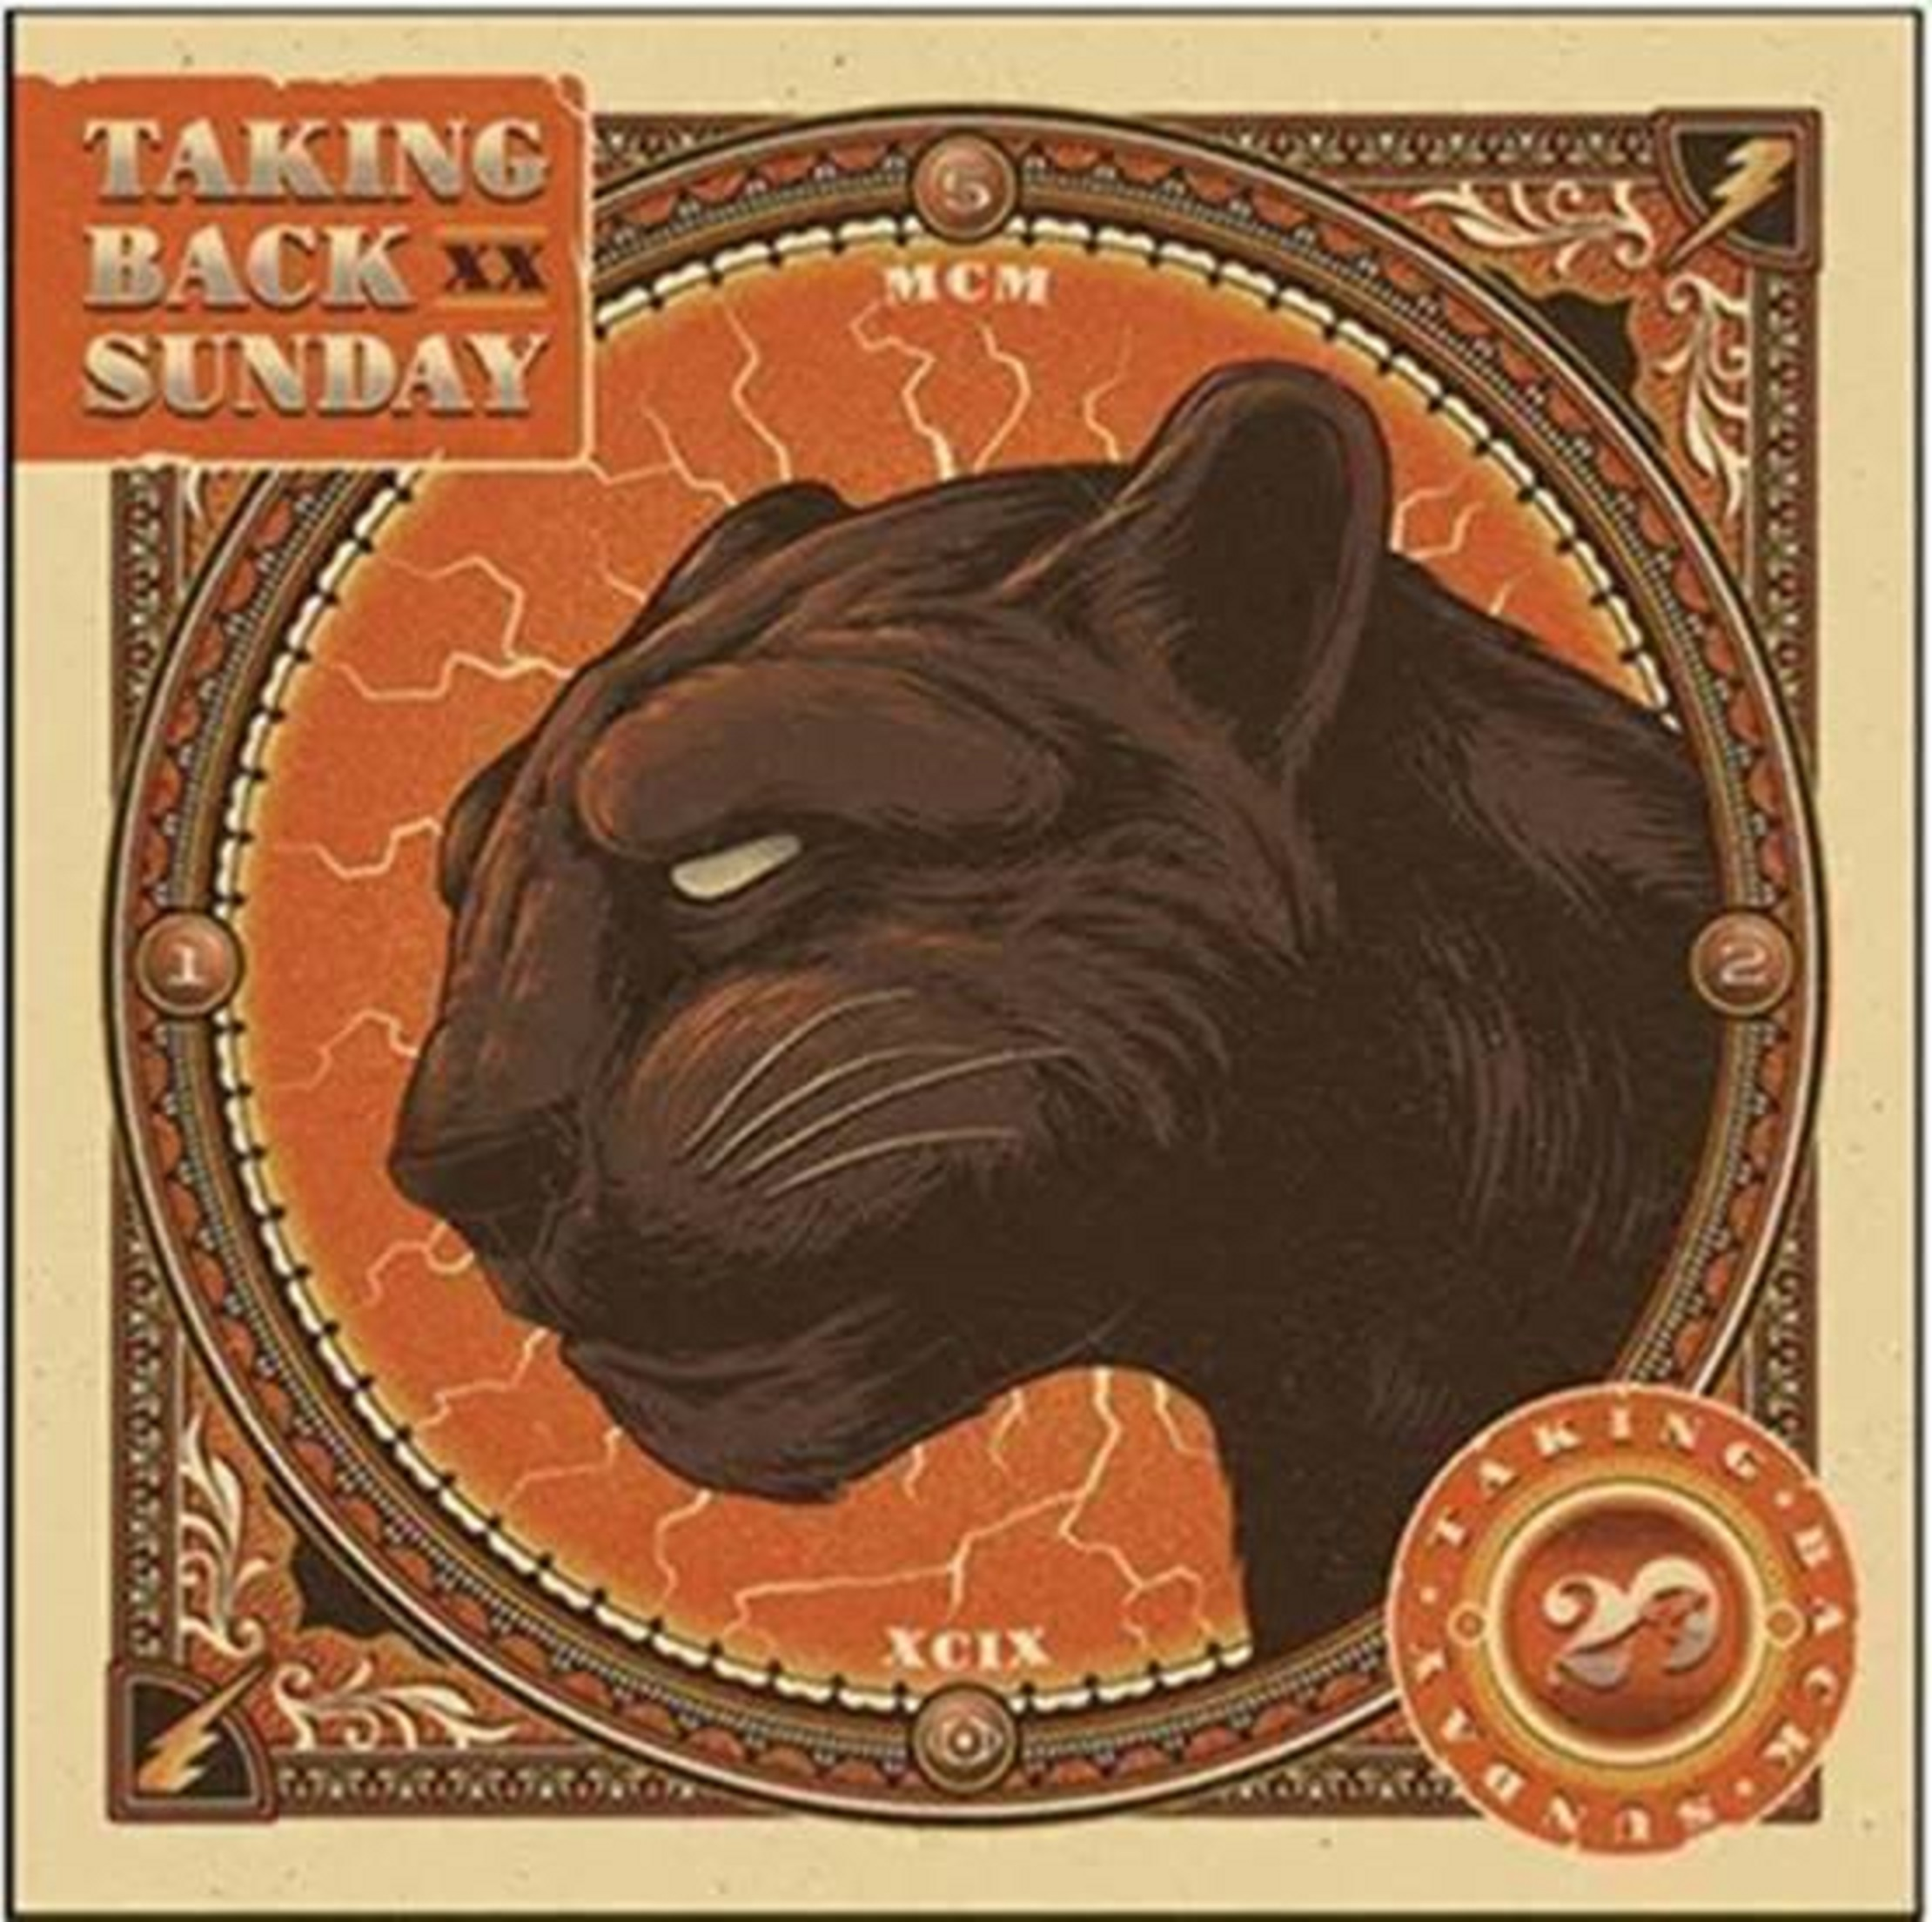 TAKING BACK SUNDAY COMMEMORATE 20th ANNIVERSARY